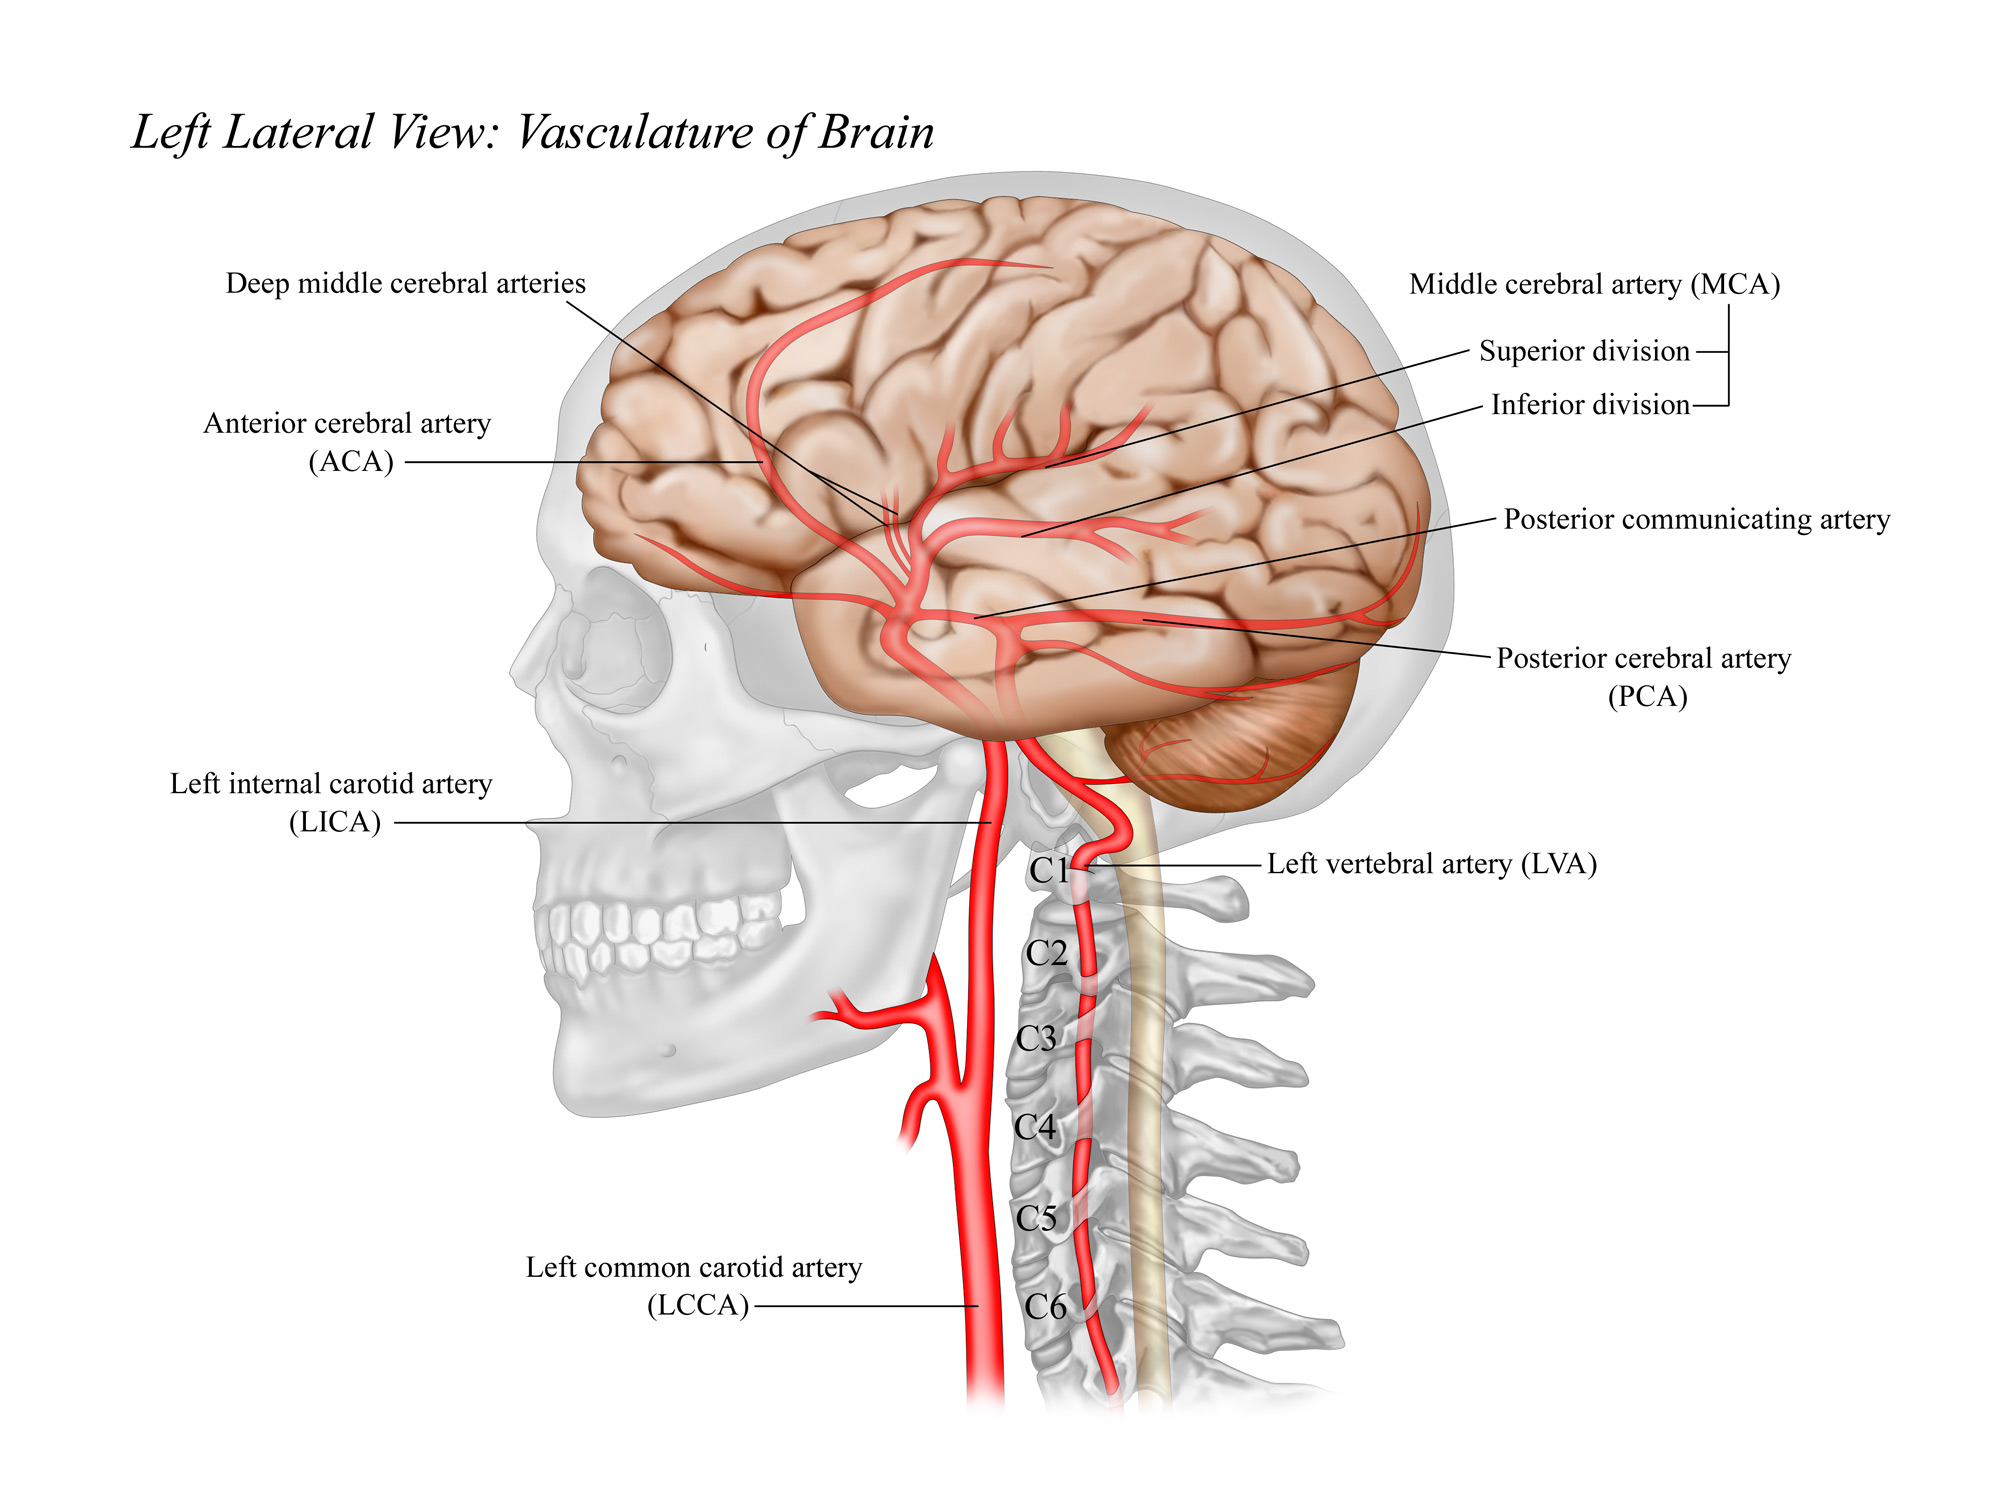 Major Arteries of Brain: Lateral